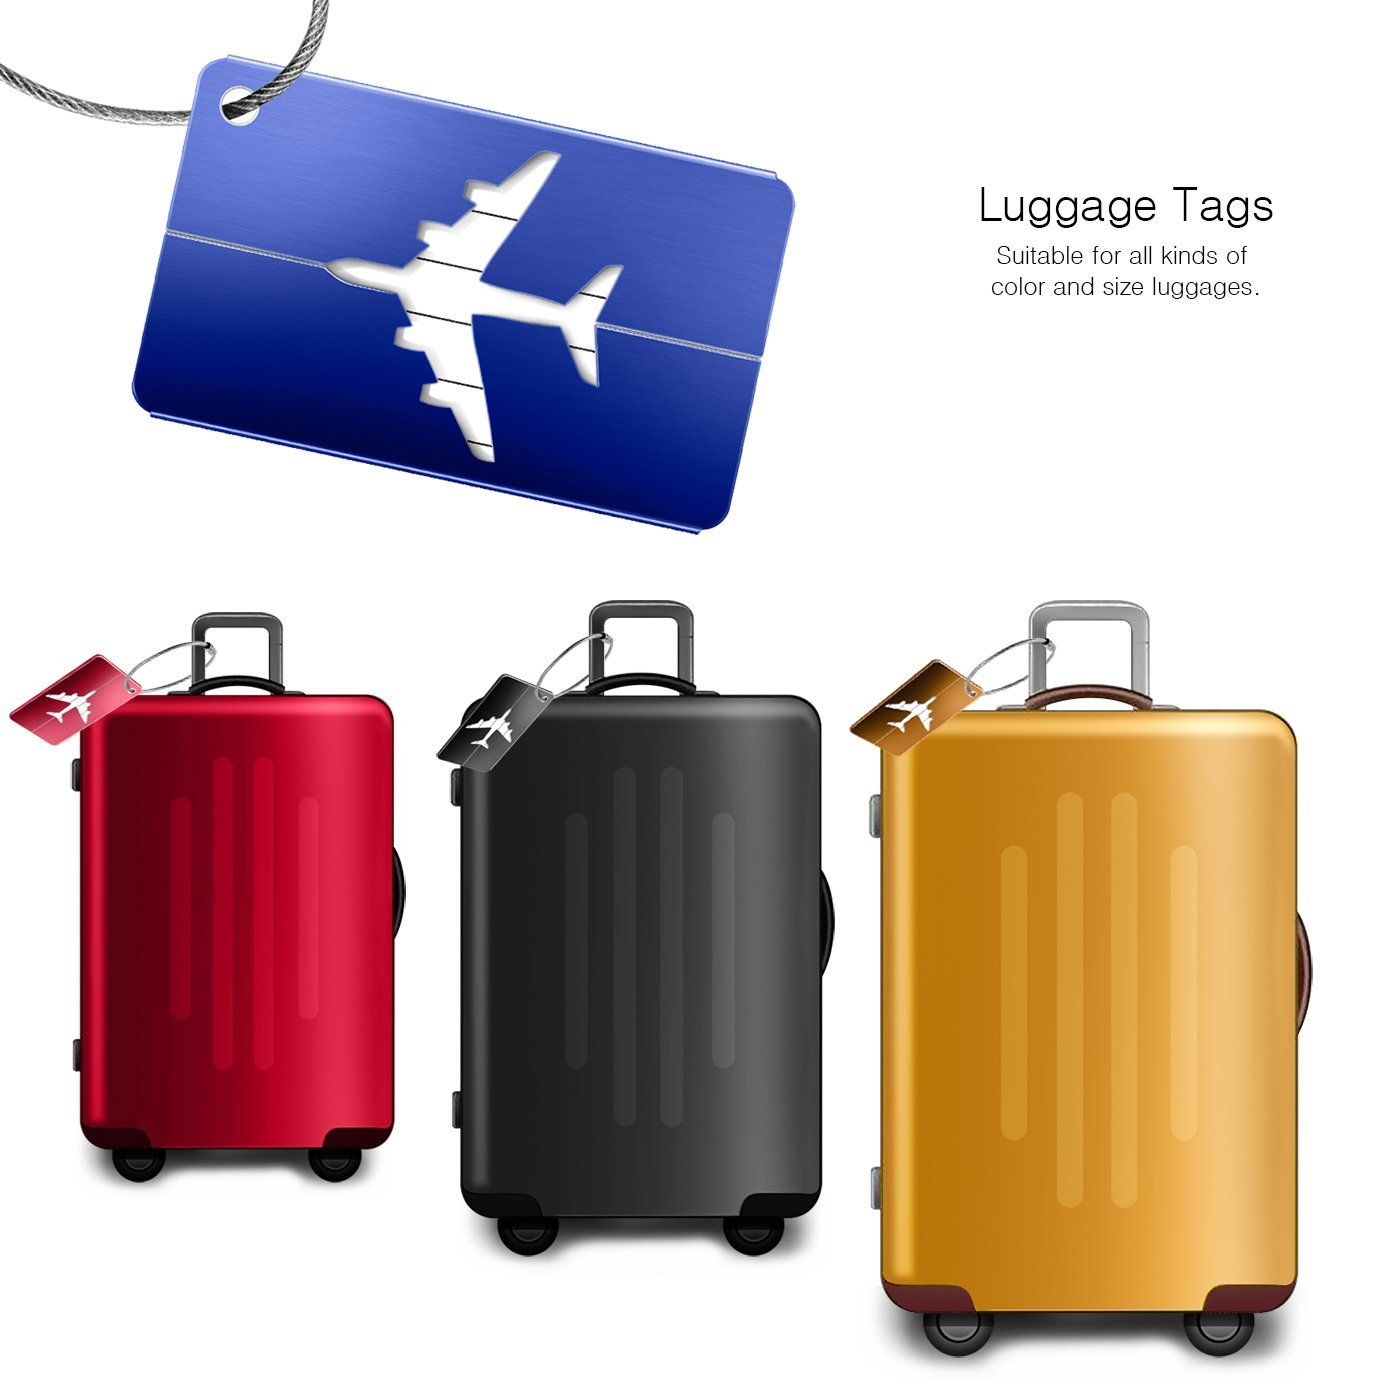 Luggage Tags 10pcs,Baggage Tags Tag Labels with Business Card Holder(10 colors) by Yosemy (Image #3)